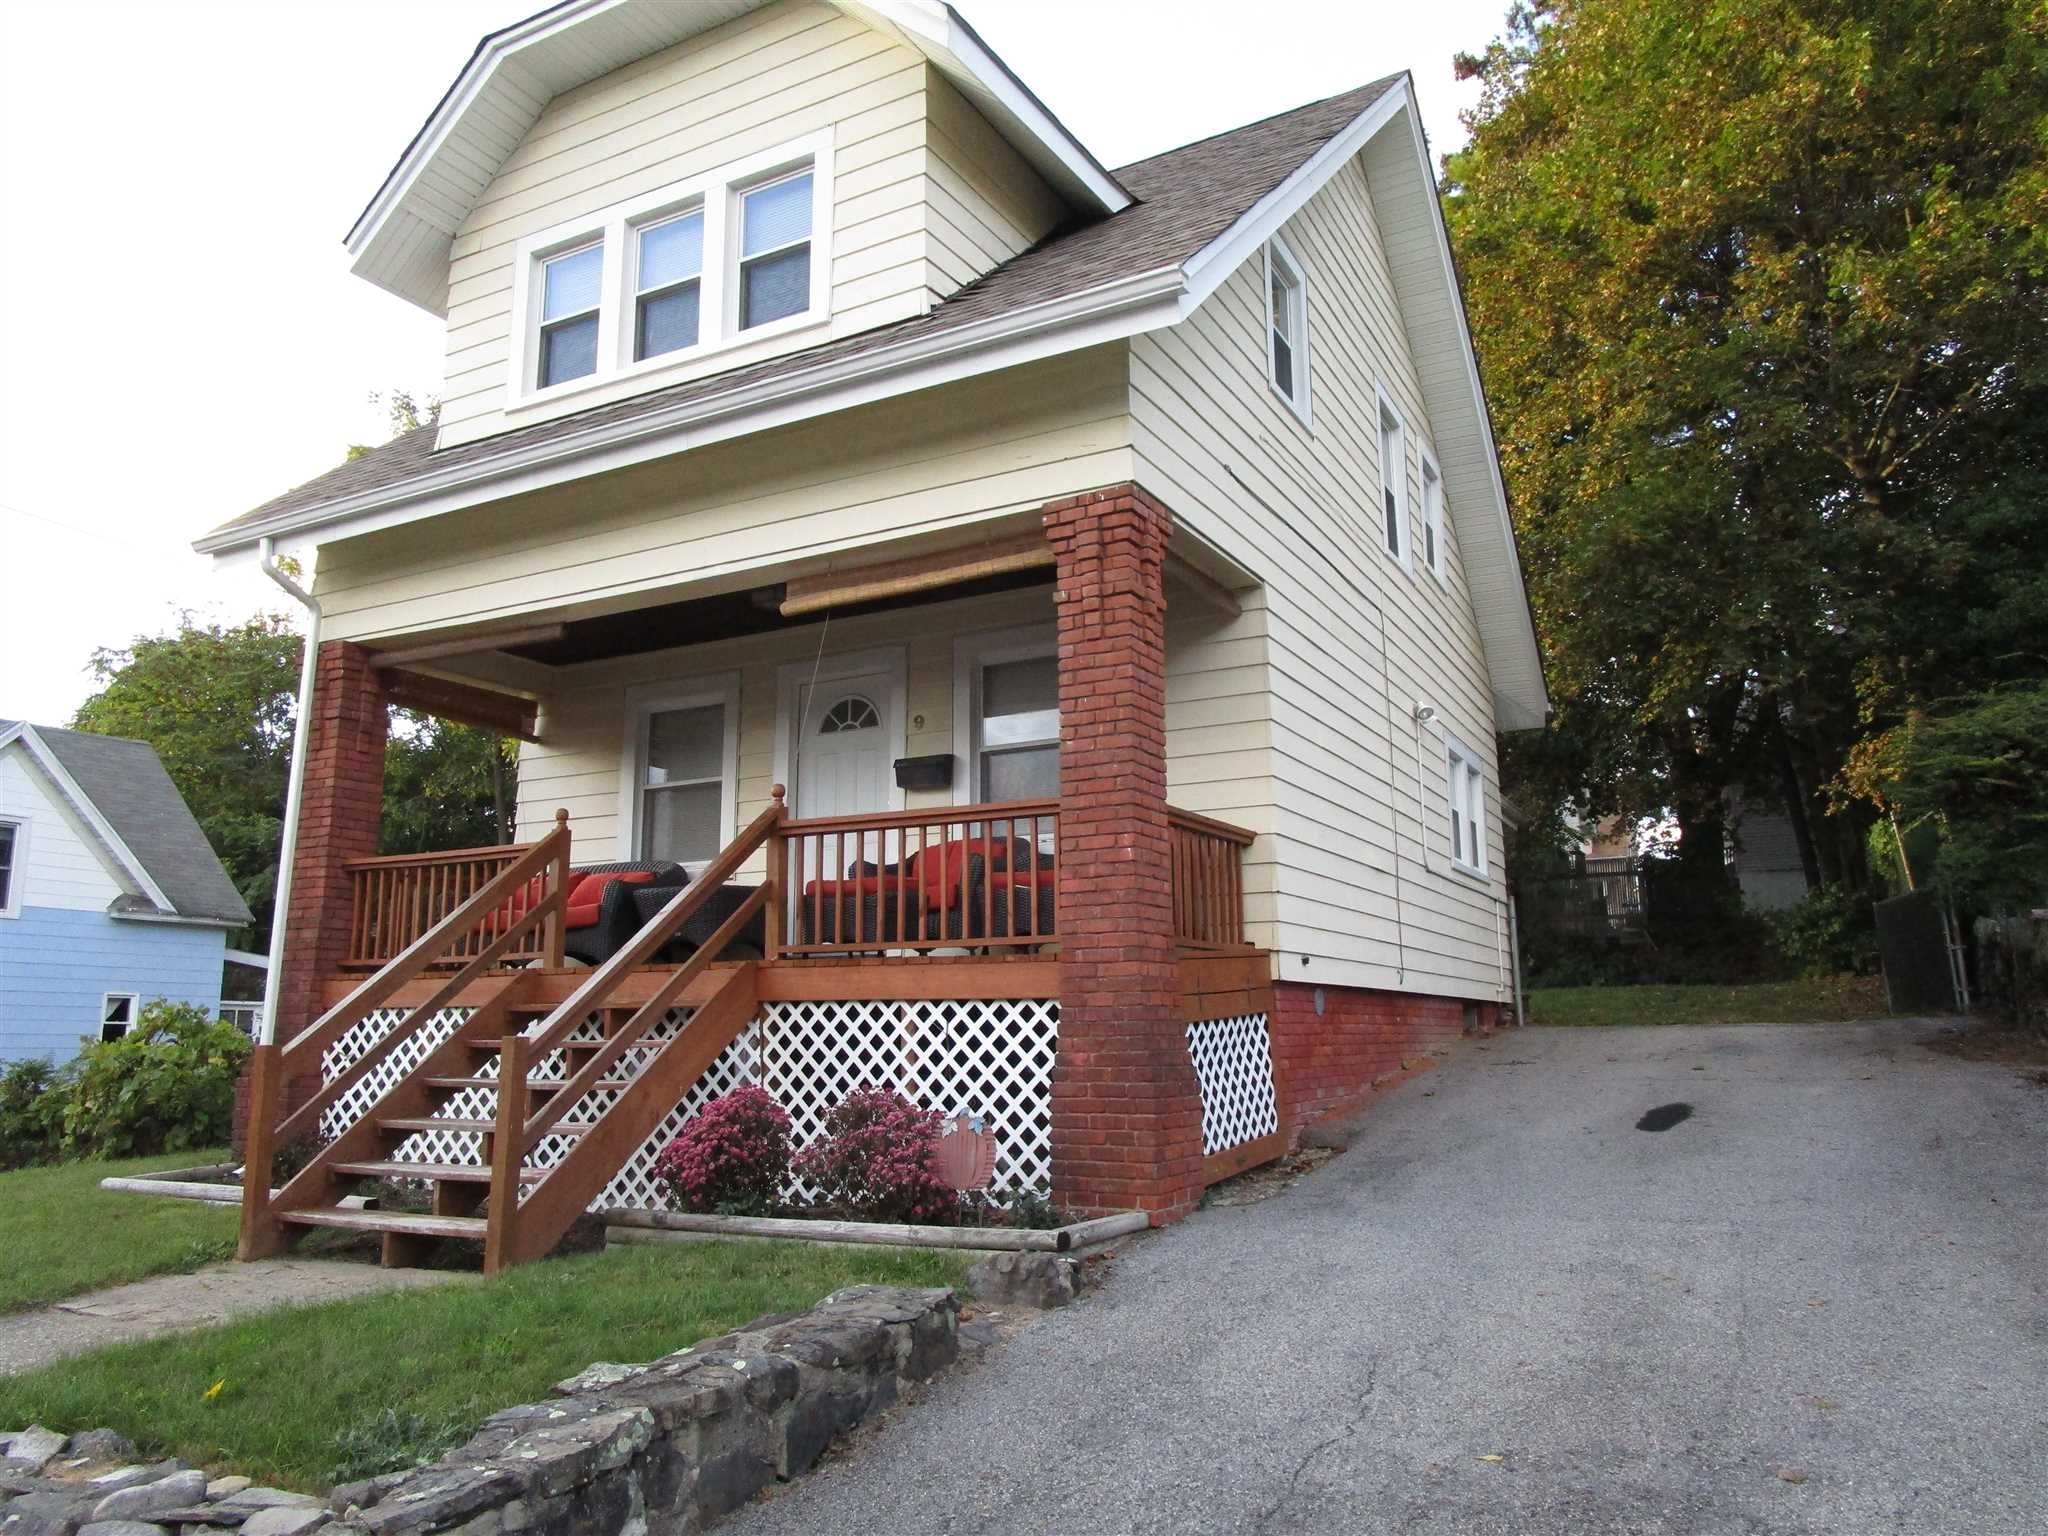 Single Family Home for Sale at 9 HINKLEY Place 9 HINKLEY Place Poughkeepsie, New York 12601 United States